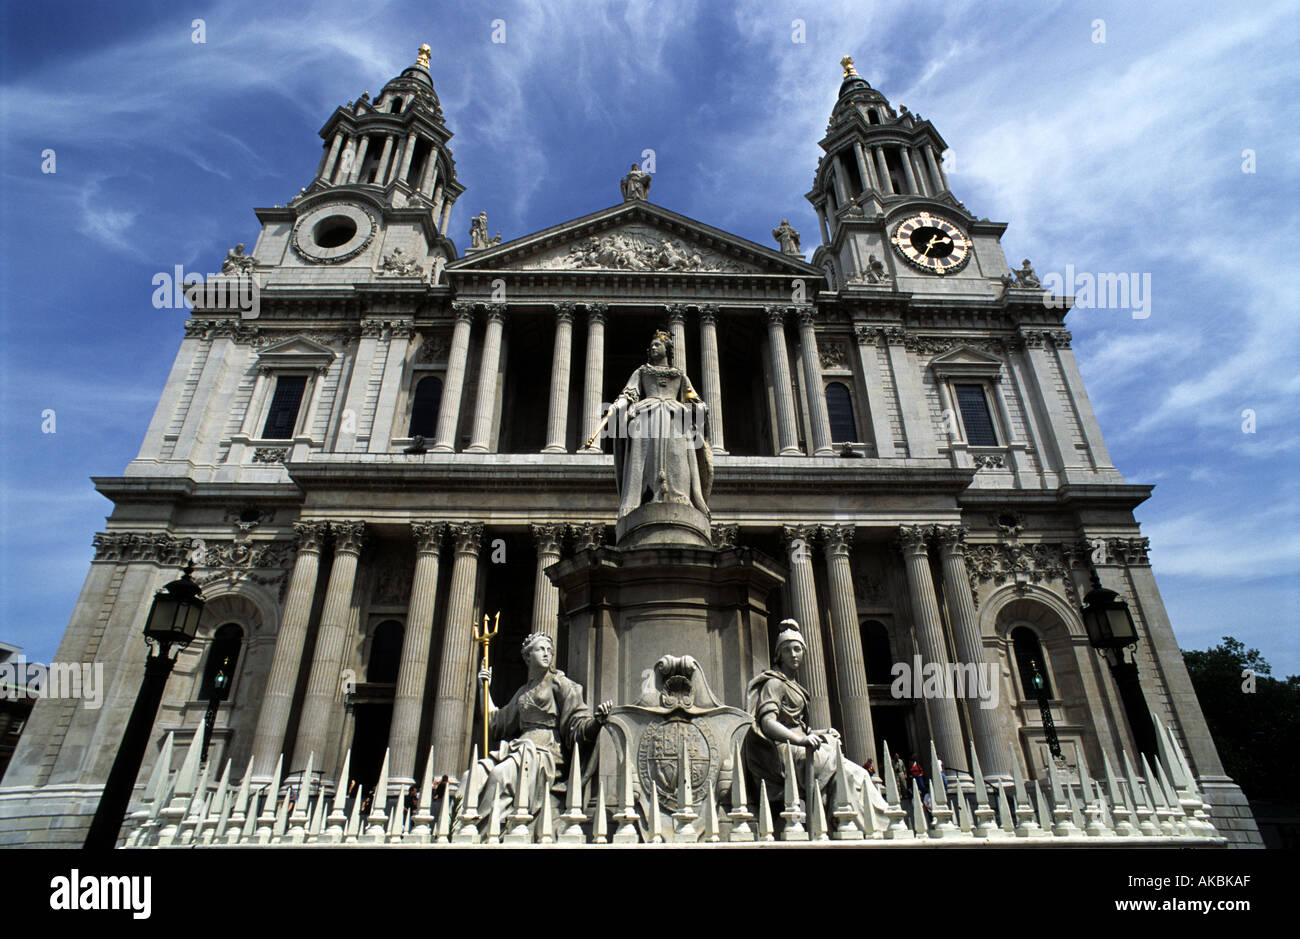 St Pauls cathedral London. - Stock Image